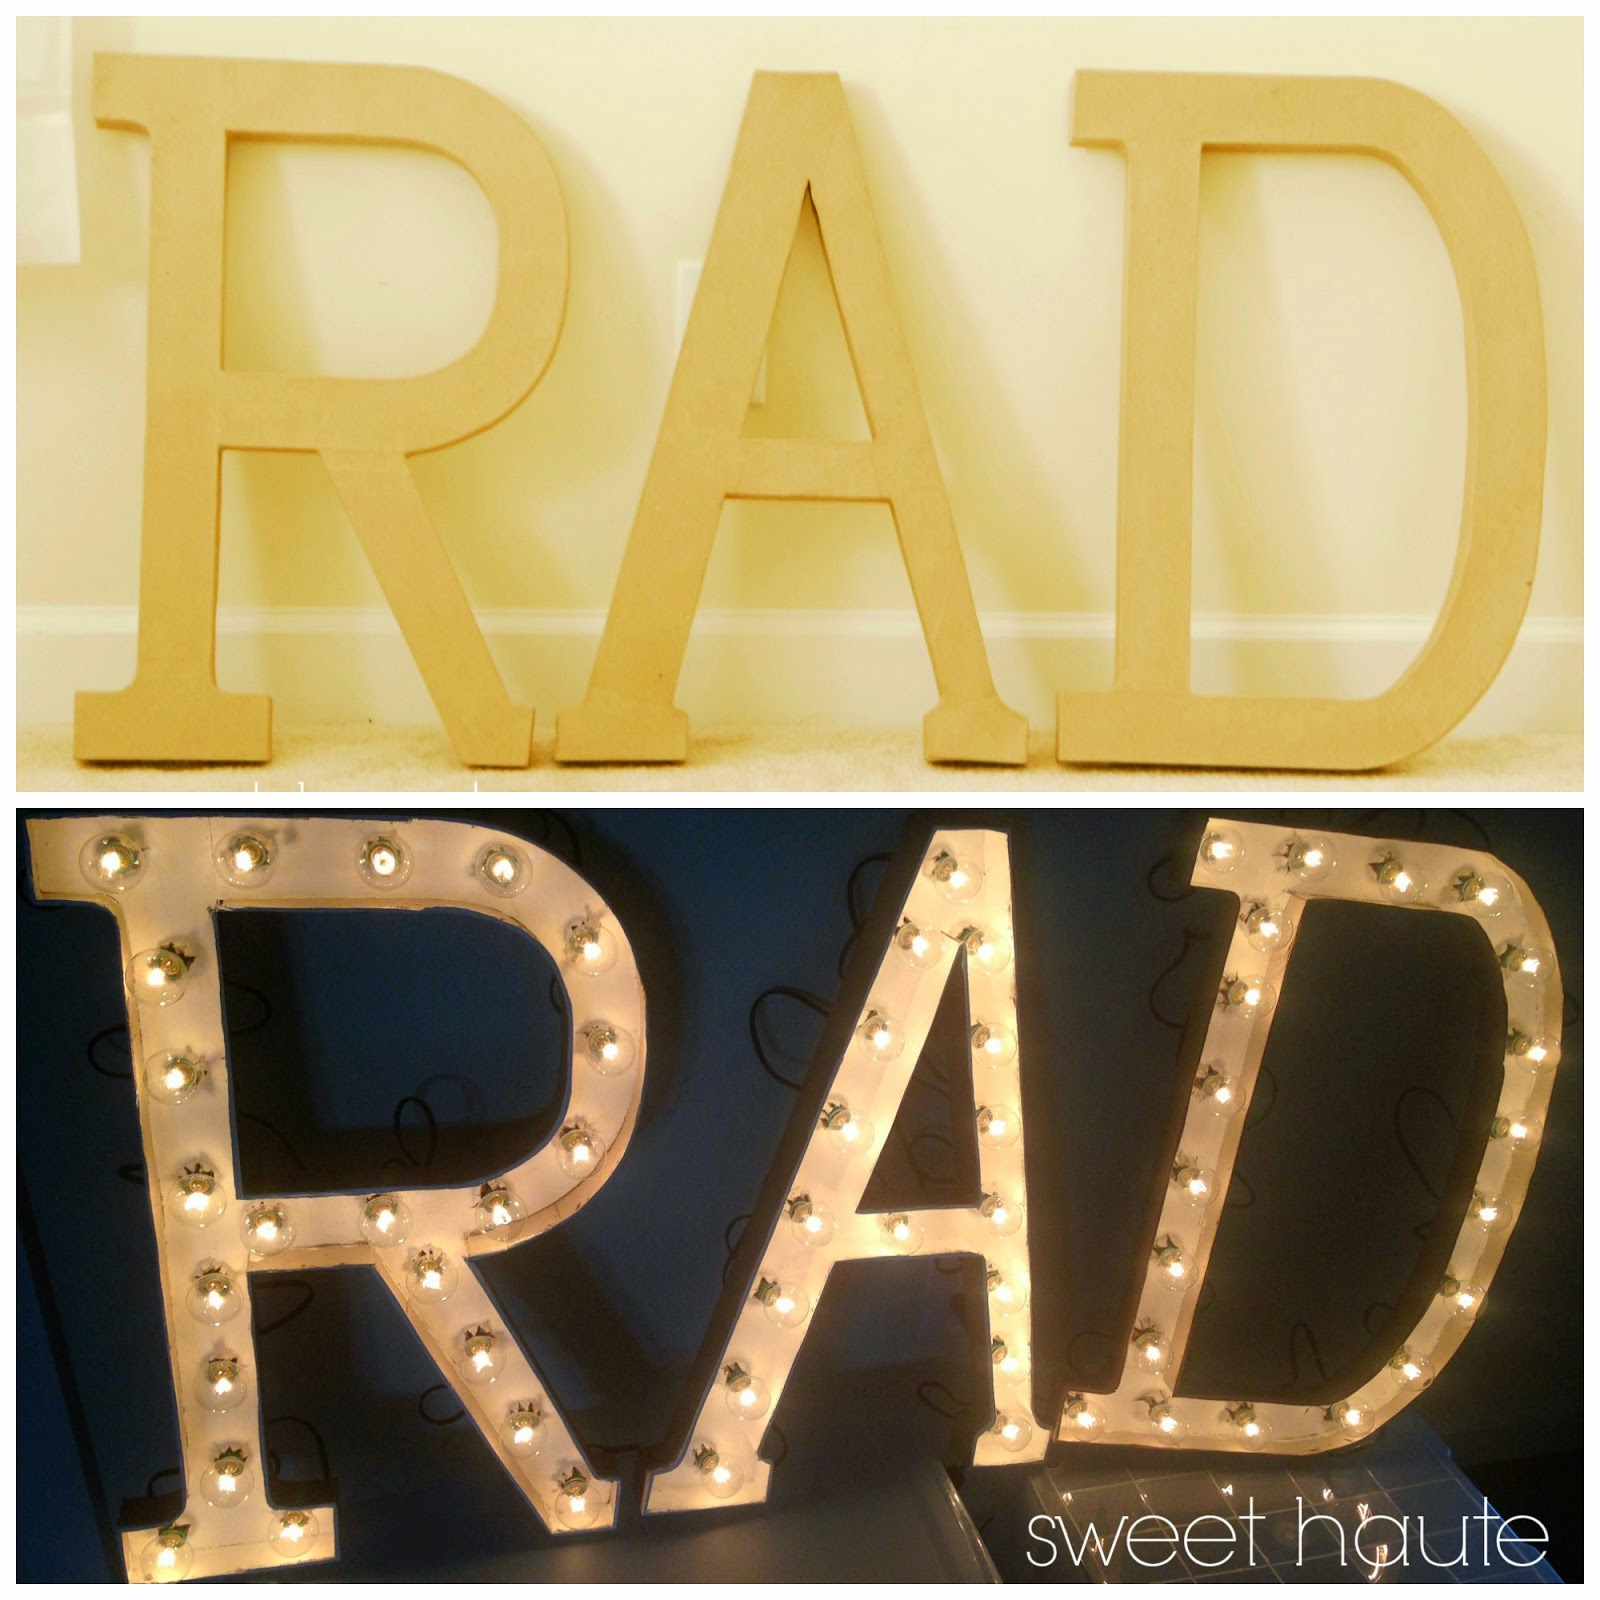 http://sweethaute.blogspot.com/2014/05/rad-marquee-letters-tutorial.html